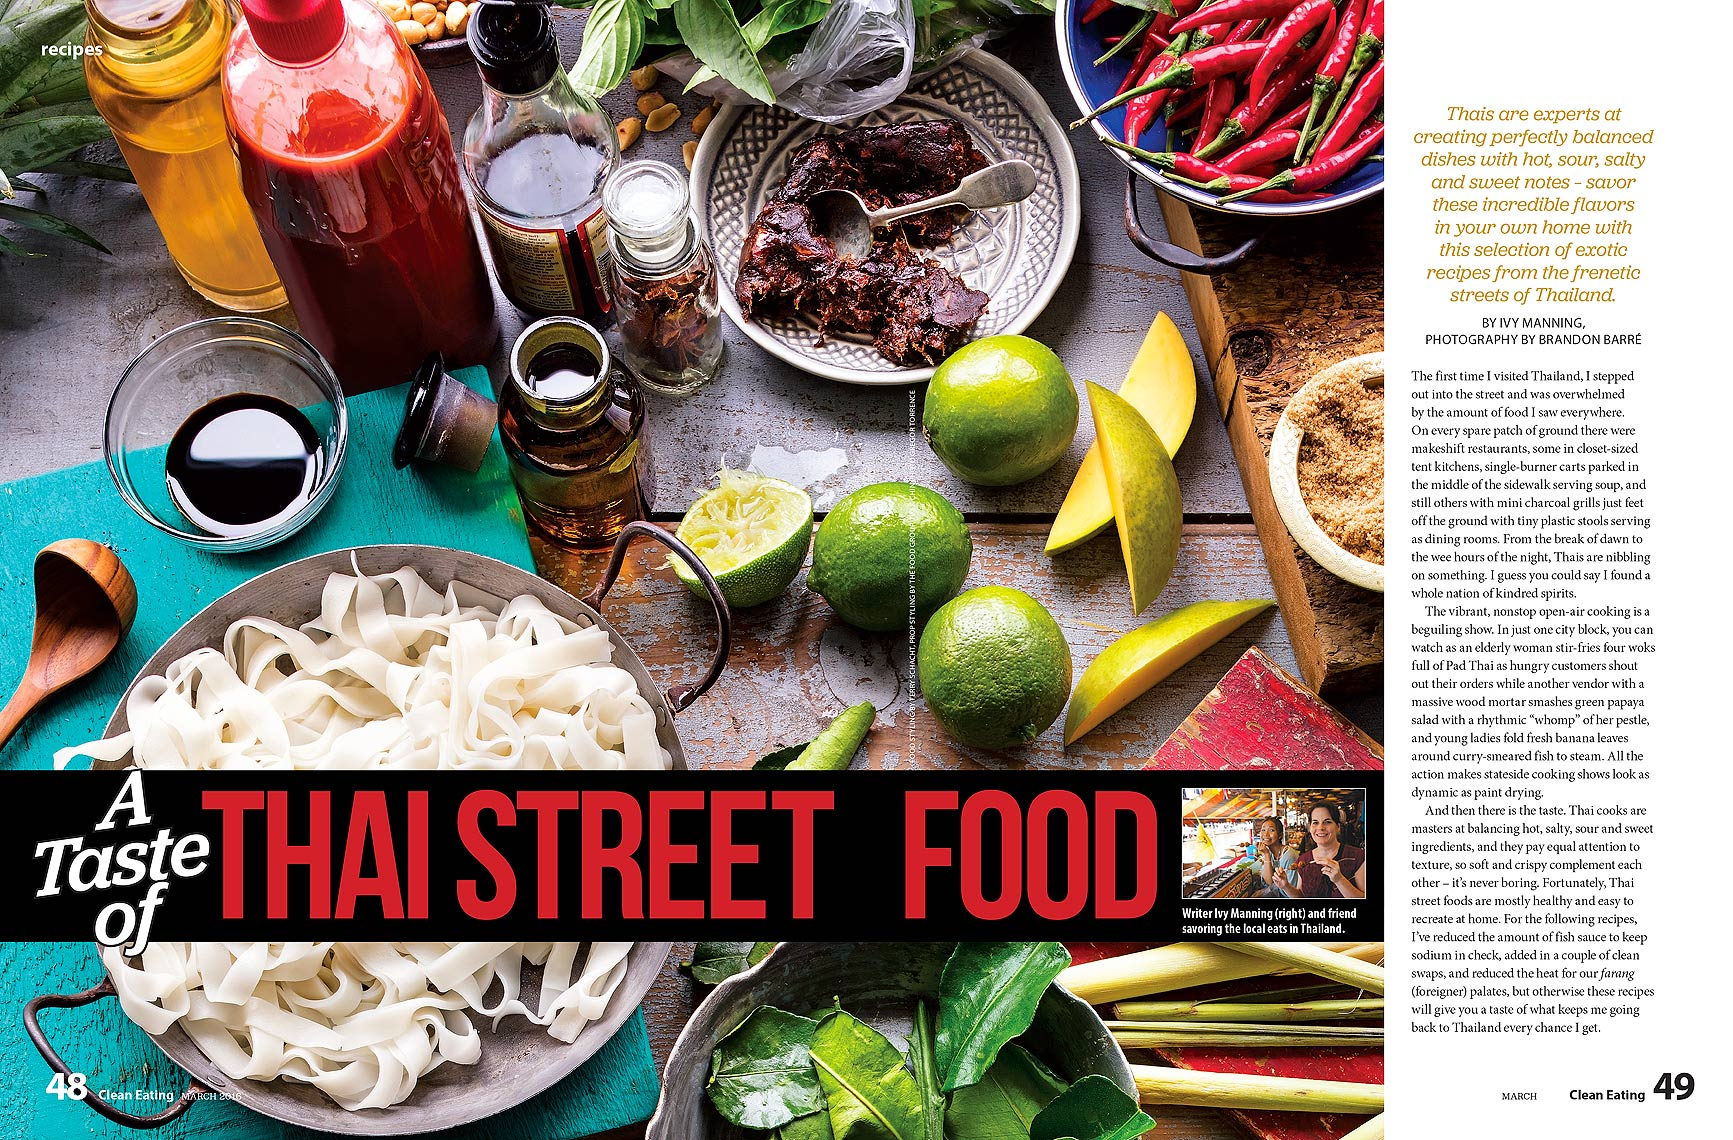 Clean Eating Magazine - Thai Street Food